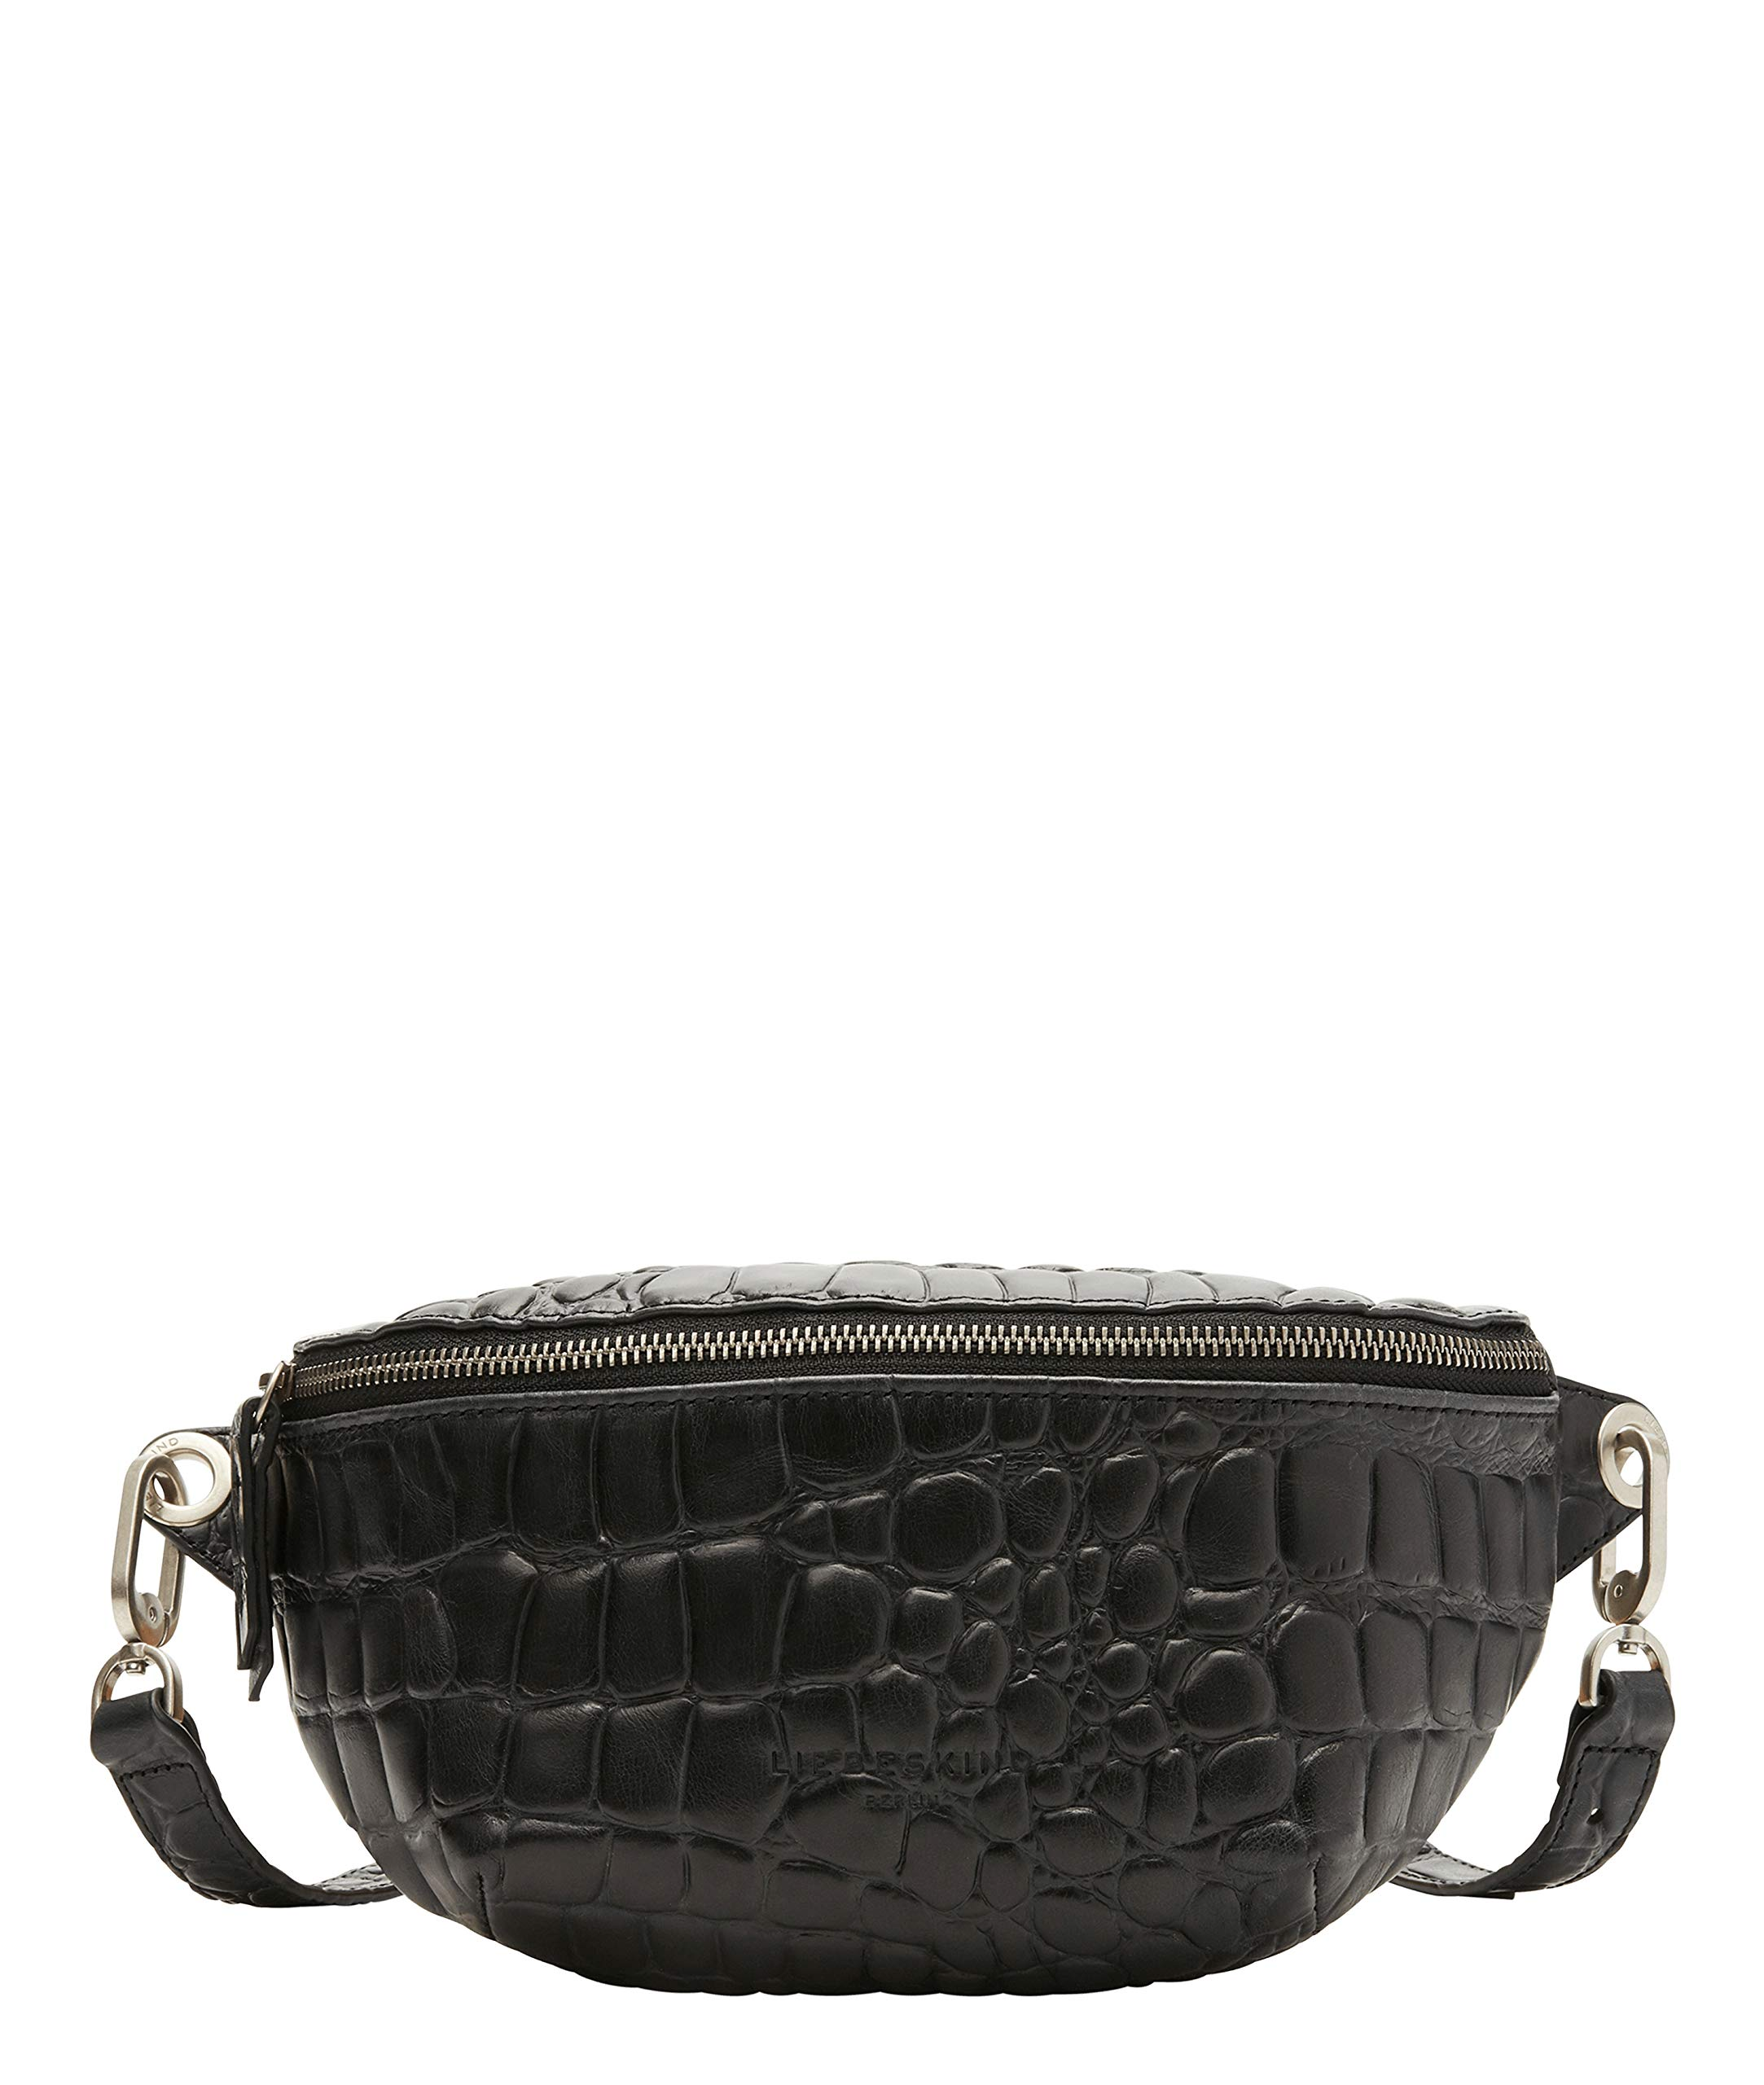 Liebeskind Berlin BOS 2020/Beltbag Medium (oval)